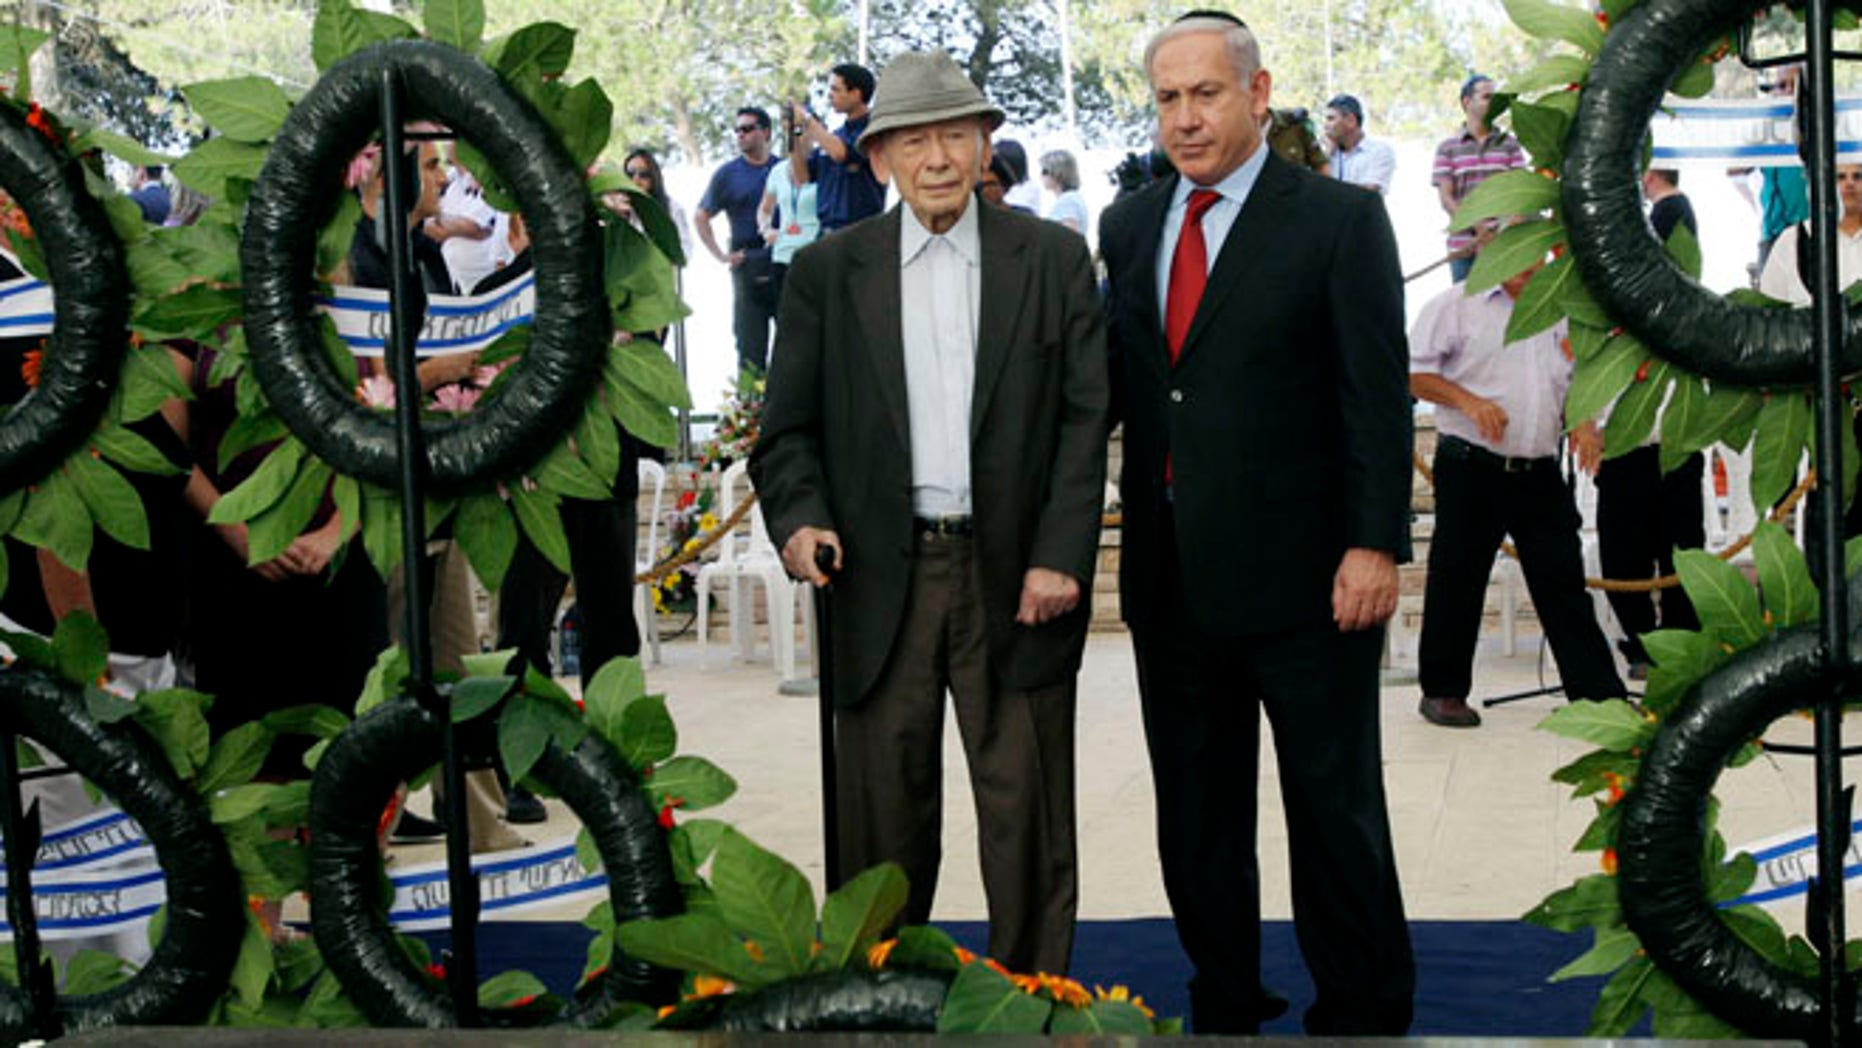 In this July 11, 2010 file photo  Israeli Prime Minister Benjamin Netanyahu, right, and his father Benzion attend the official memorial service for the late Zionist leader Ze'ev Jabotinsky at the Mt. Herzl cemetery in Jerusalem.